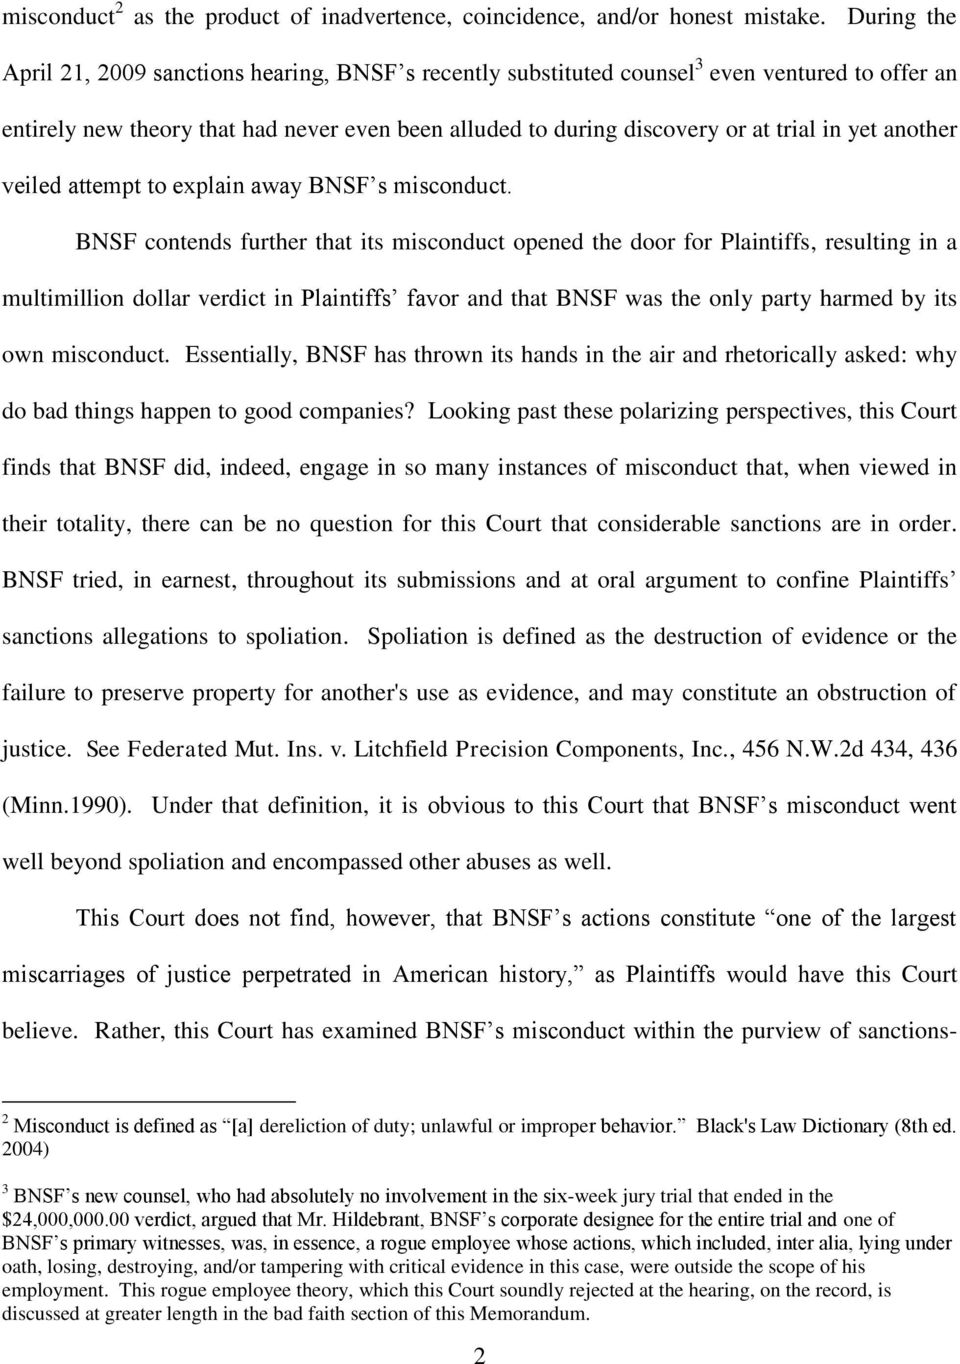 yet another veiled attempt to explain away BNSF s misconduct.